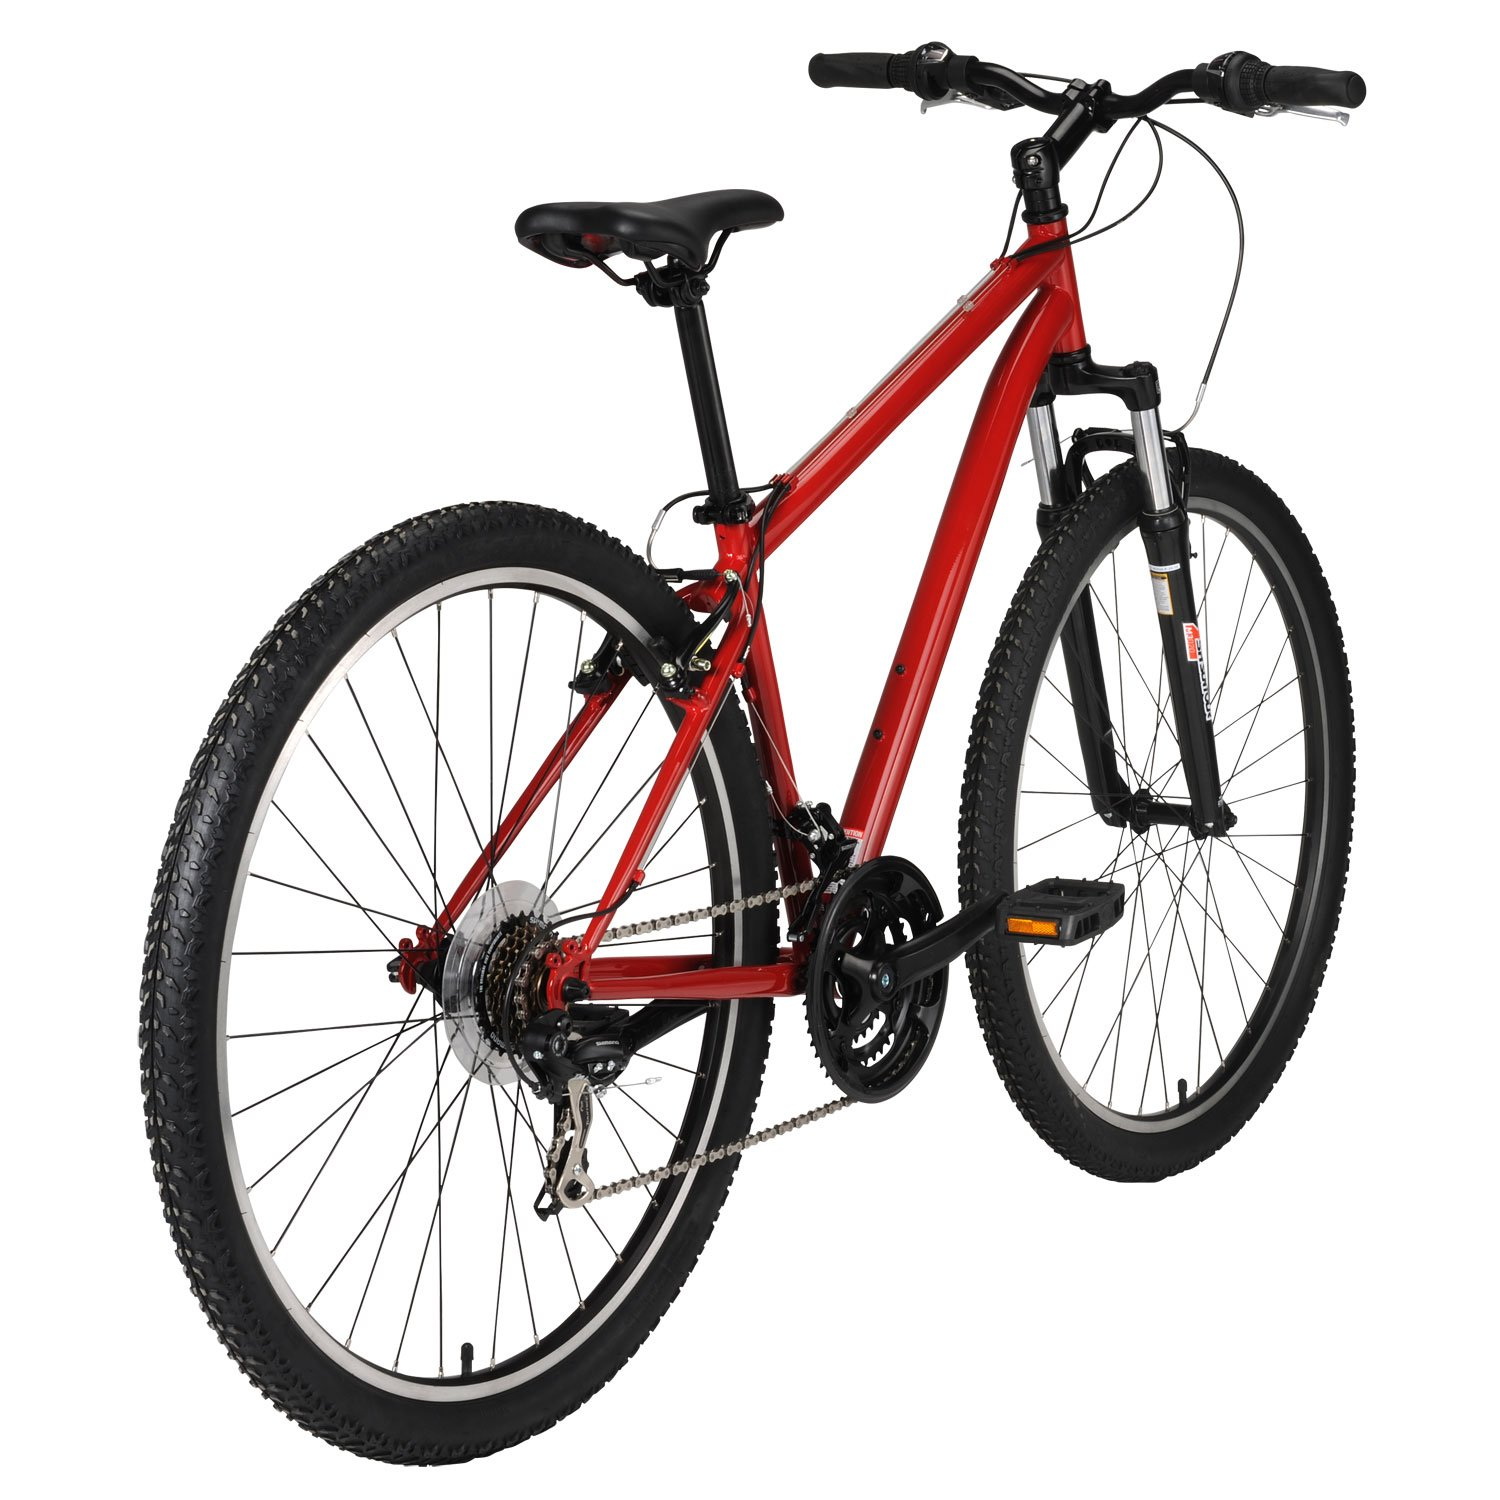 Nashbar At1 29er Mountain Bike 19 Inch Hardtail Mountain Bikes